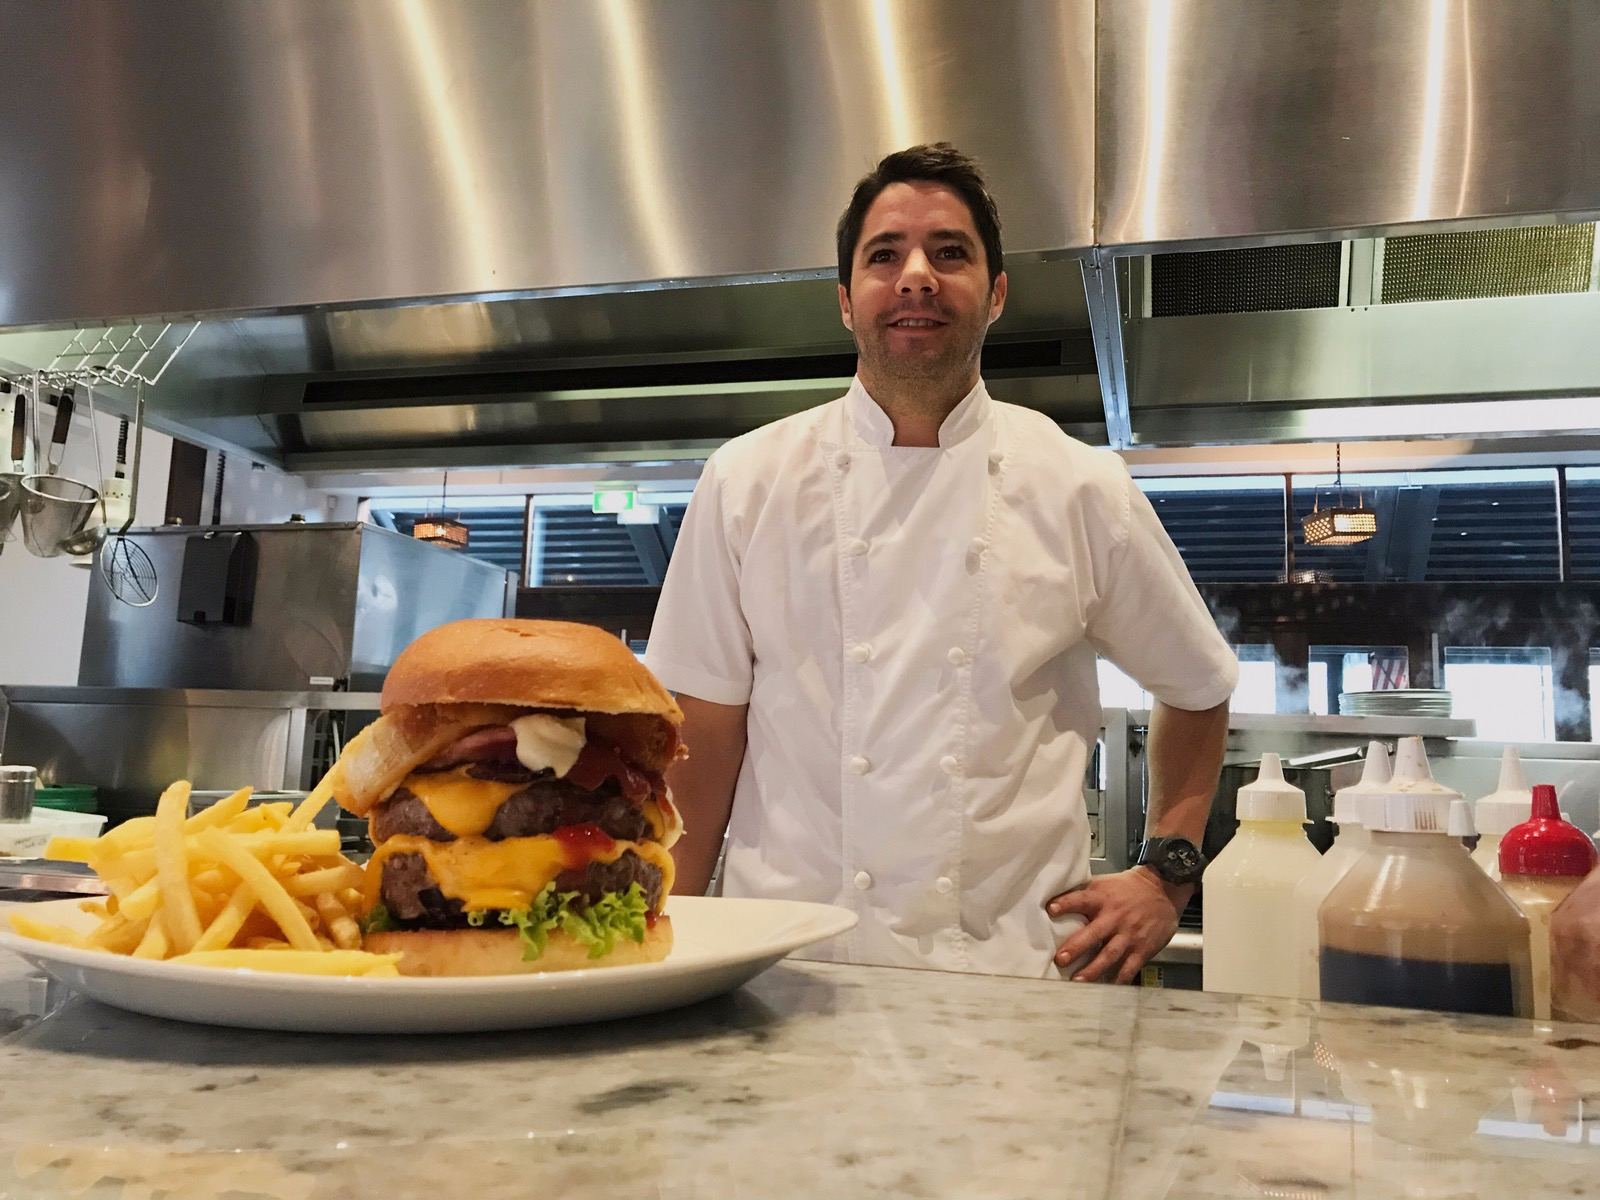 Beef up your burger with Simon Moss